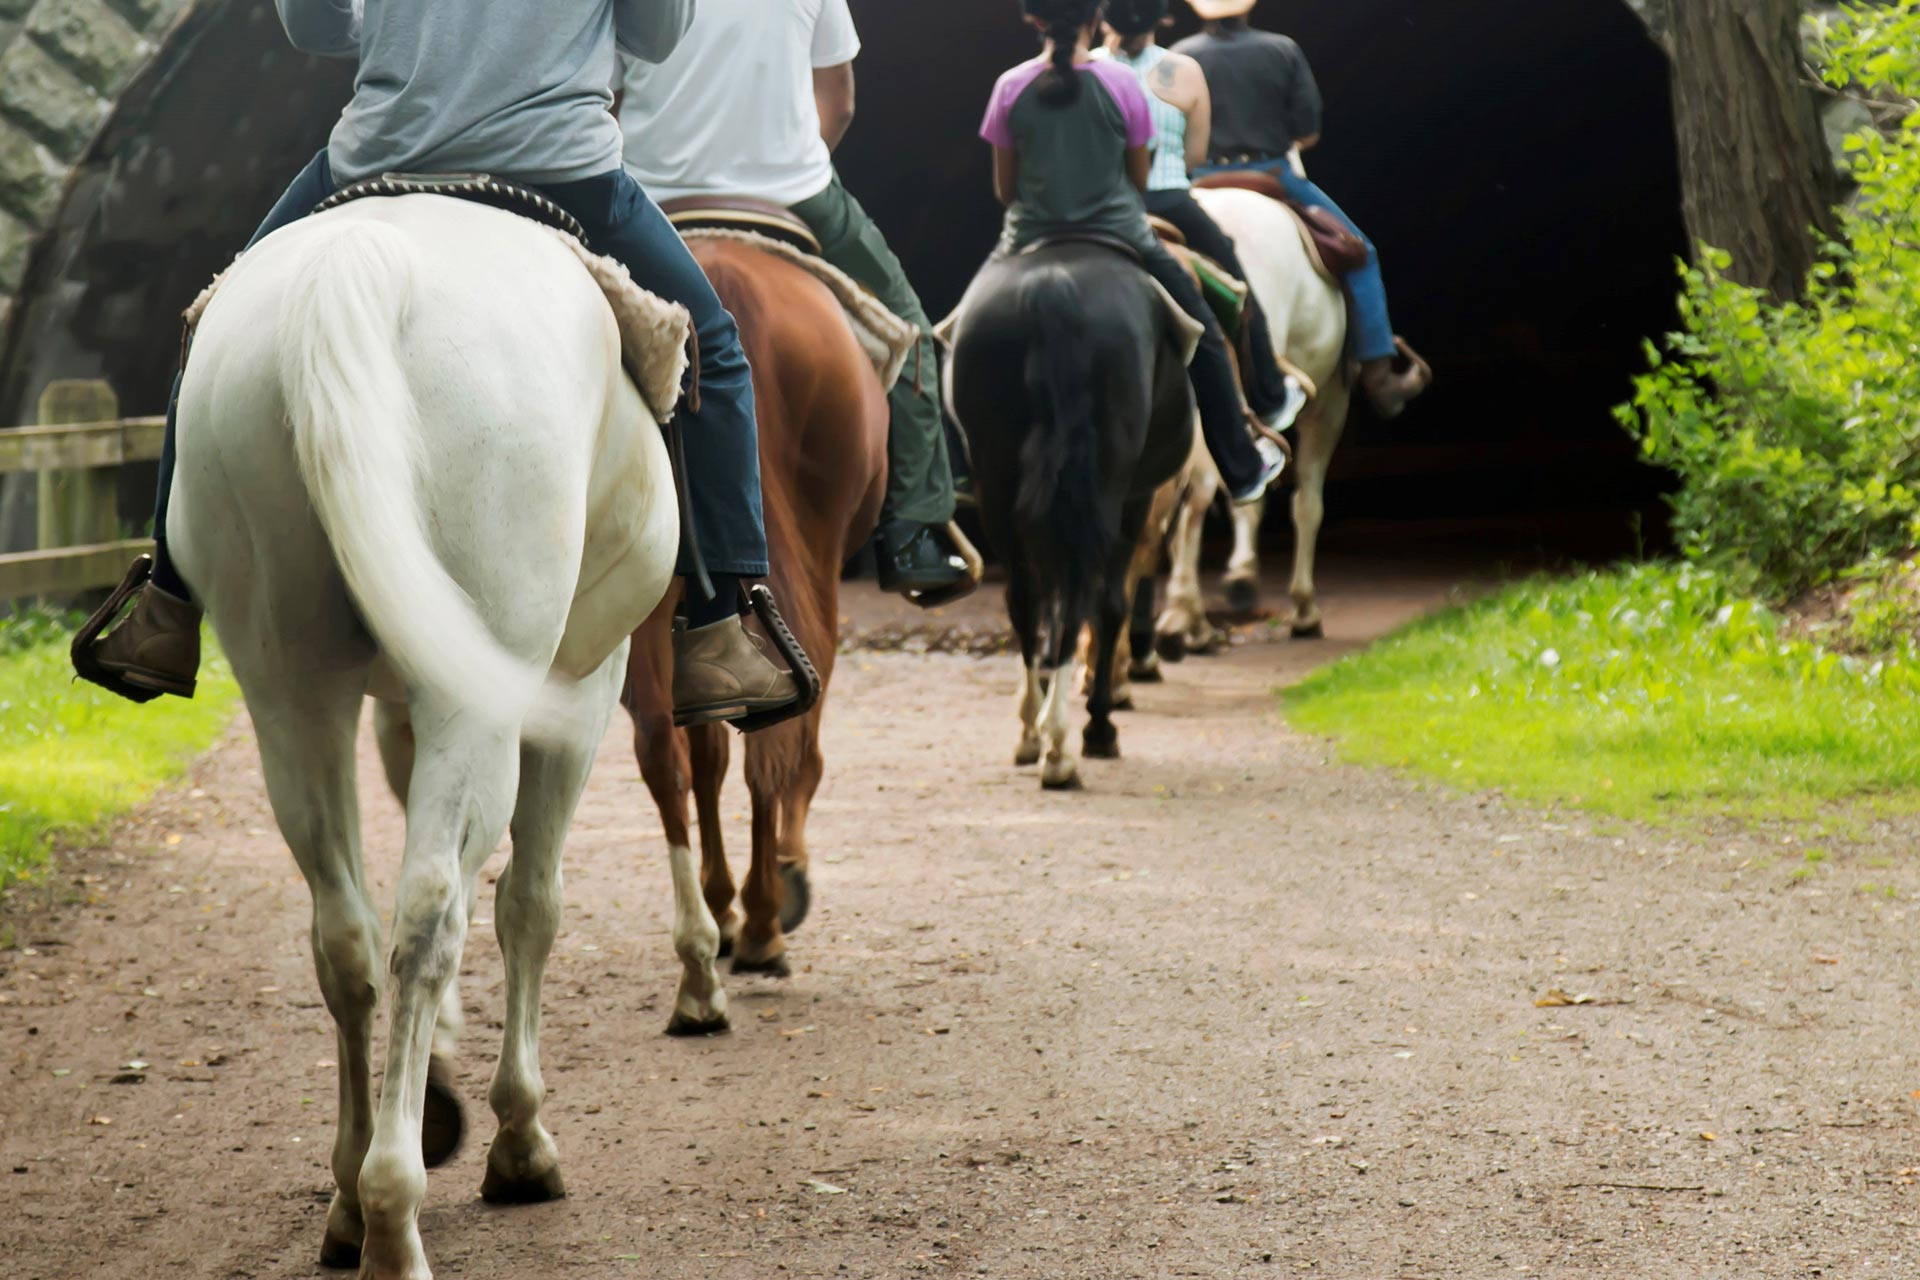 A family horseback riding; Courtesy of WoodysPhotos/Shutterstock